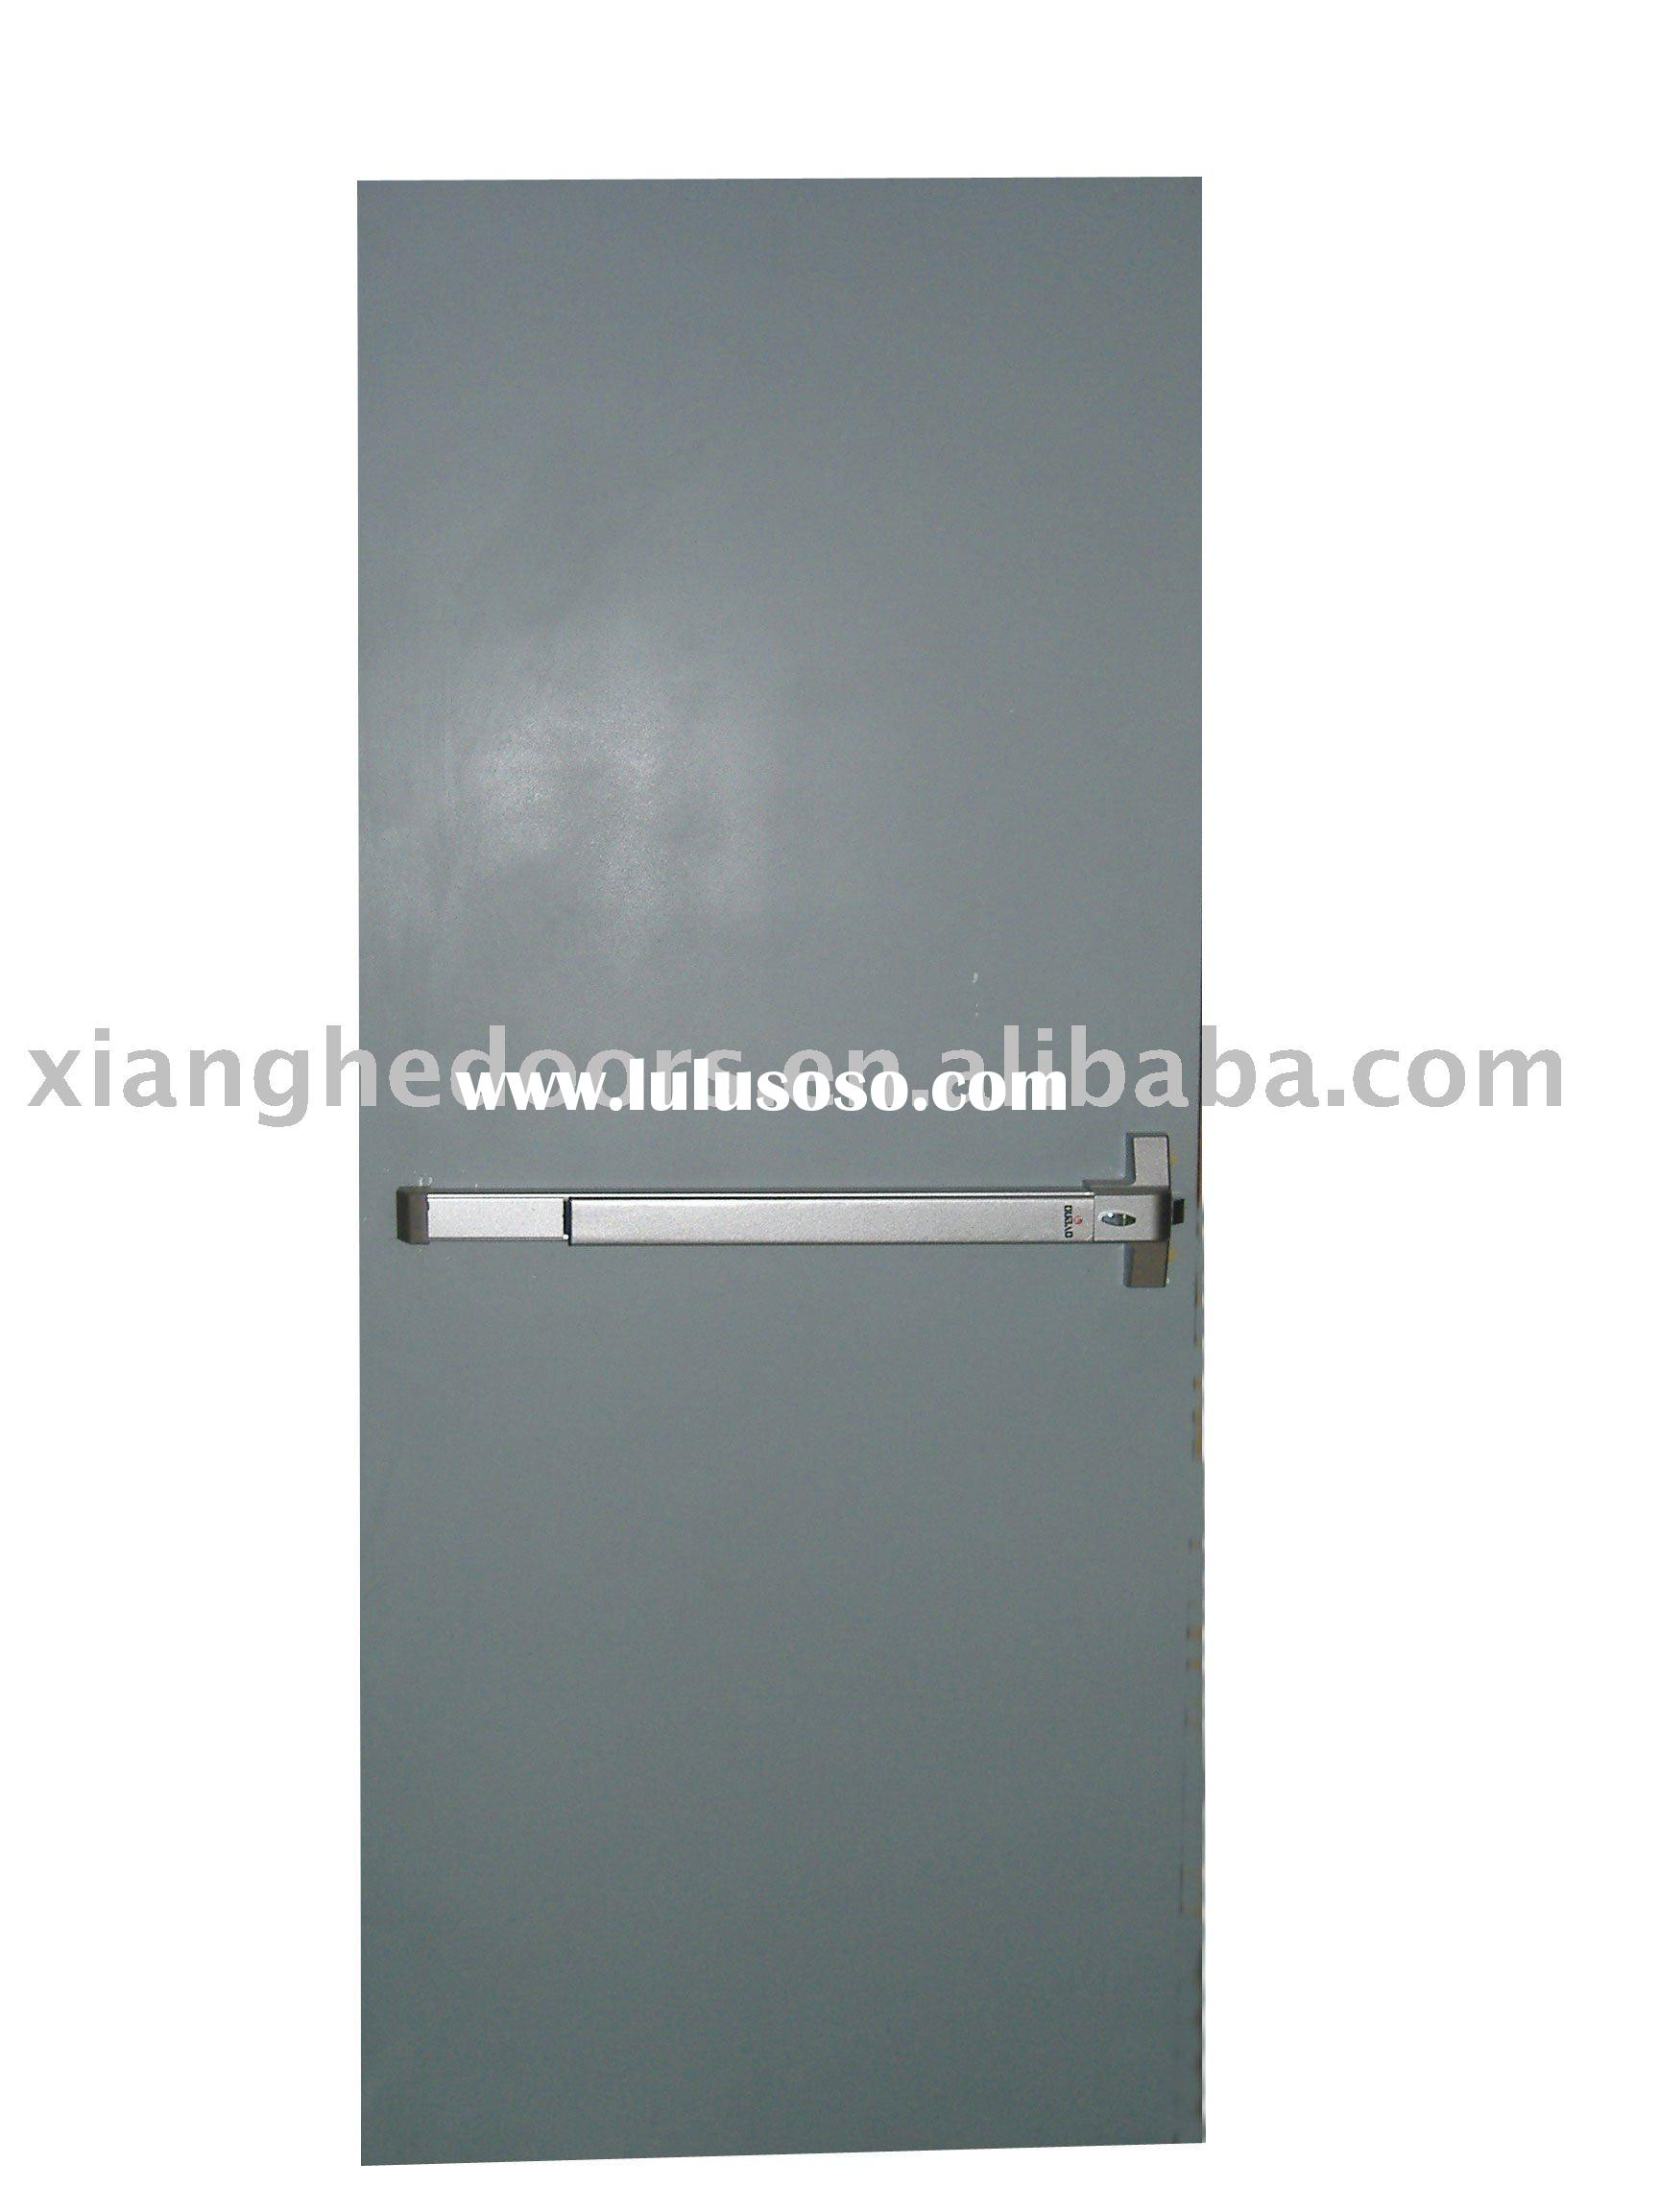 fire door panic bar(XH-246)